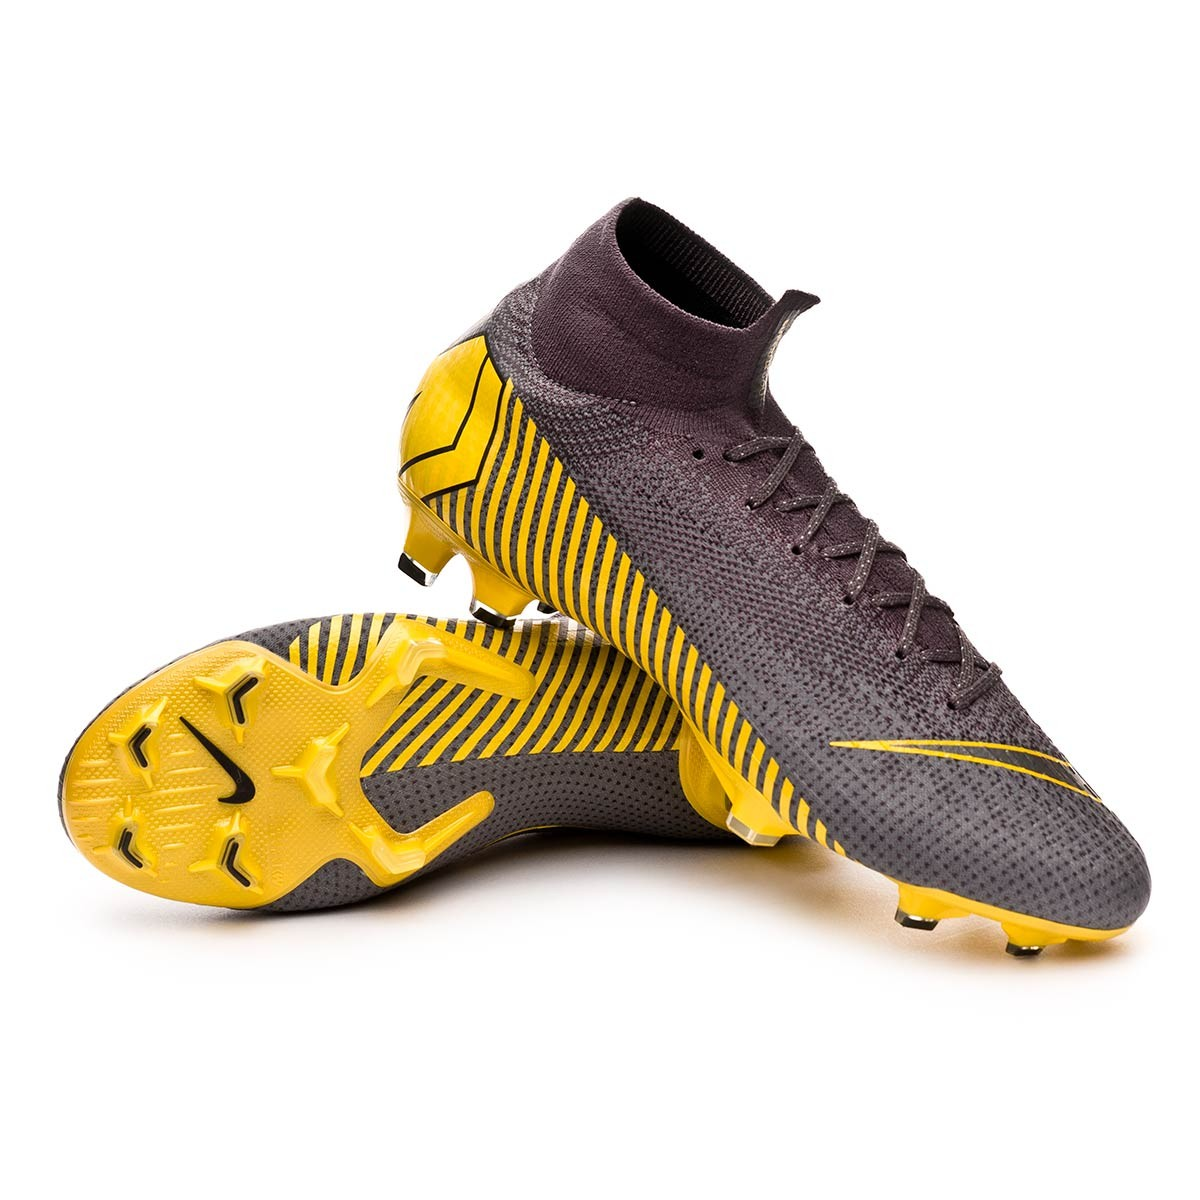 superior quality 2b771 e35d3 Bota Mercurial Superfly VI Elite FG Thunder grey-Black-Dark grey